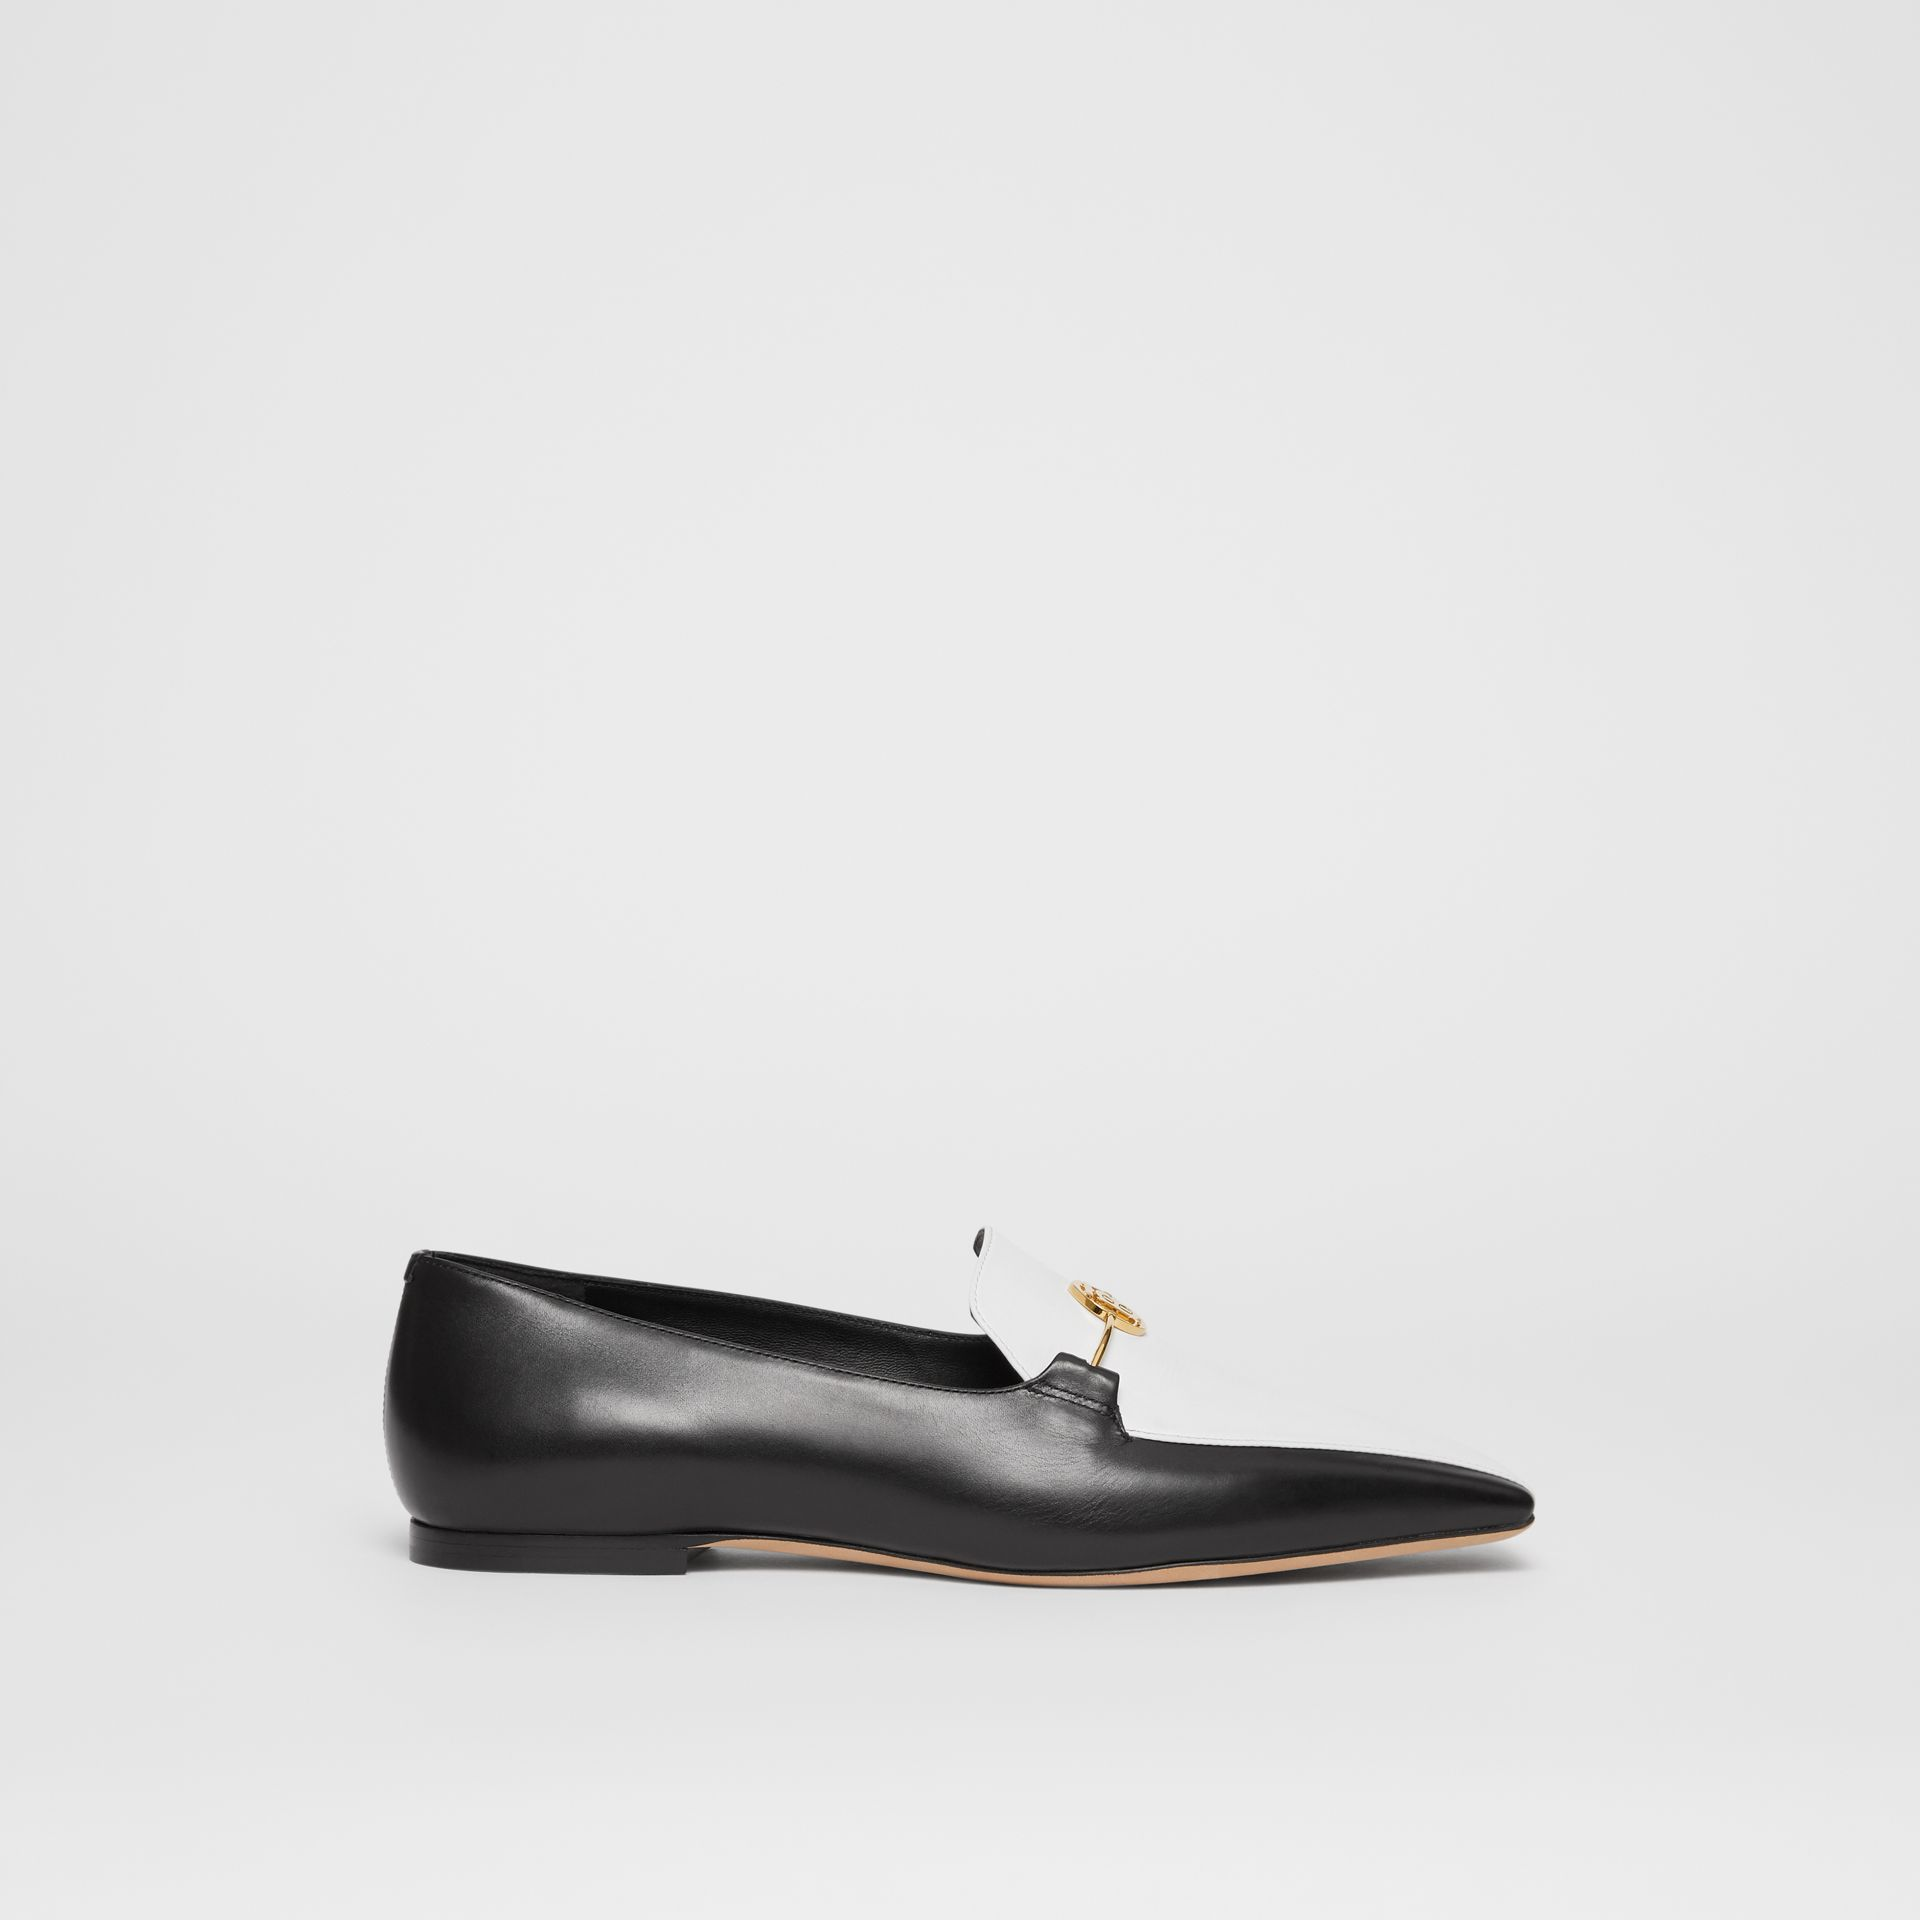 Monogram Motif Two-tone Leather Loafers in Black/white - Women | Burberry United States - gallery image 5